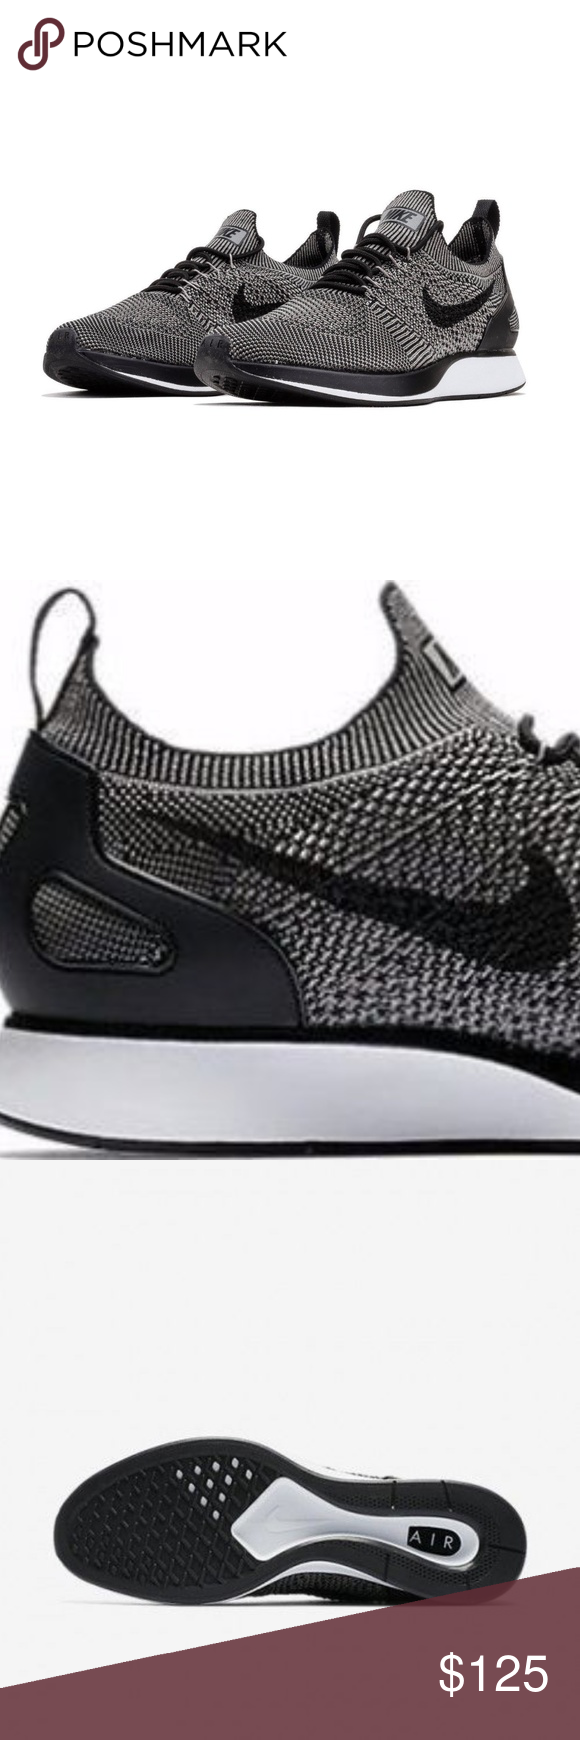 info for ea257 0b810 Nike Air Zoom Mariah Flyknit Racer Black Grey Nike Air Zoom Mariah Flyknit  Racer Black Grey